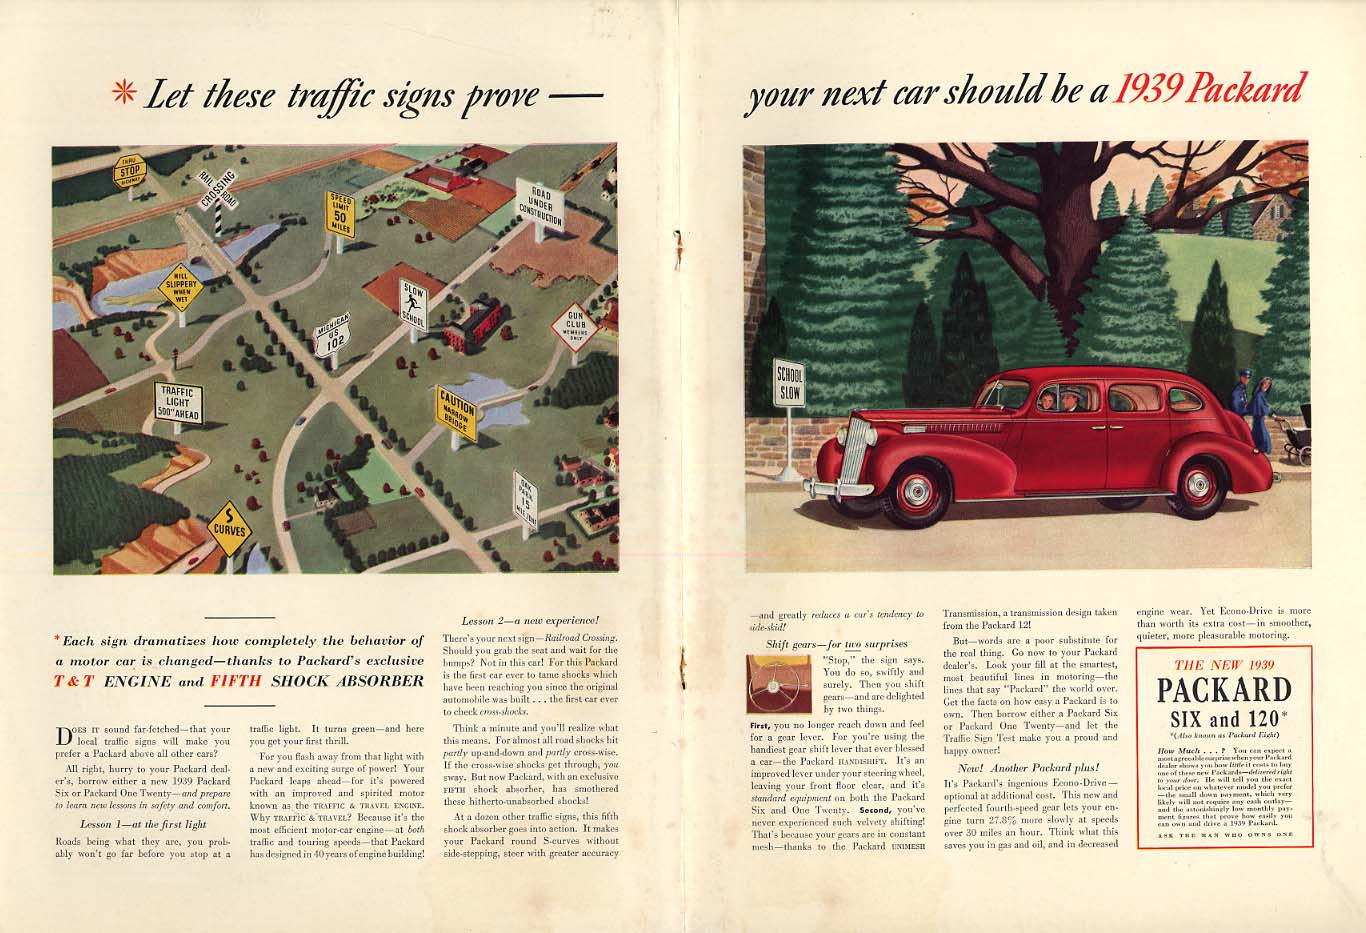 Let these traffic signs prove you next car should be a Packard ad 1939 NY